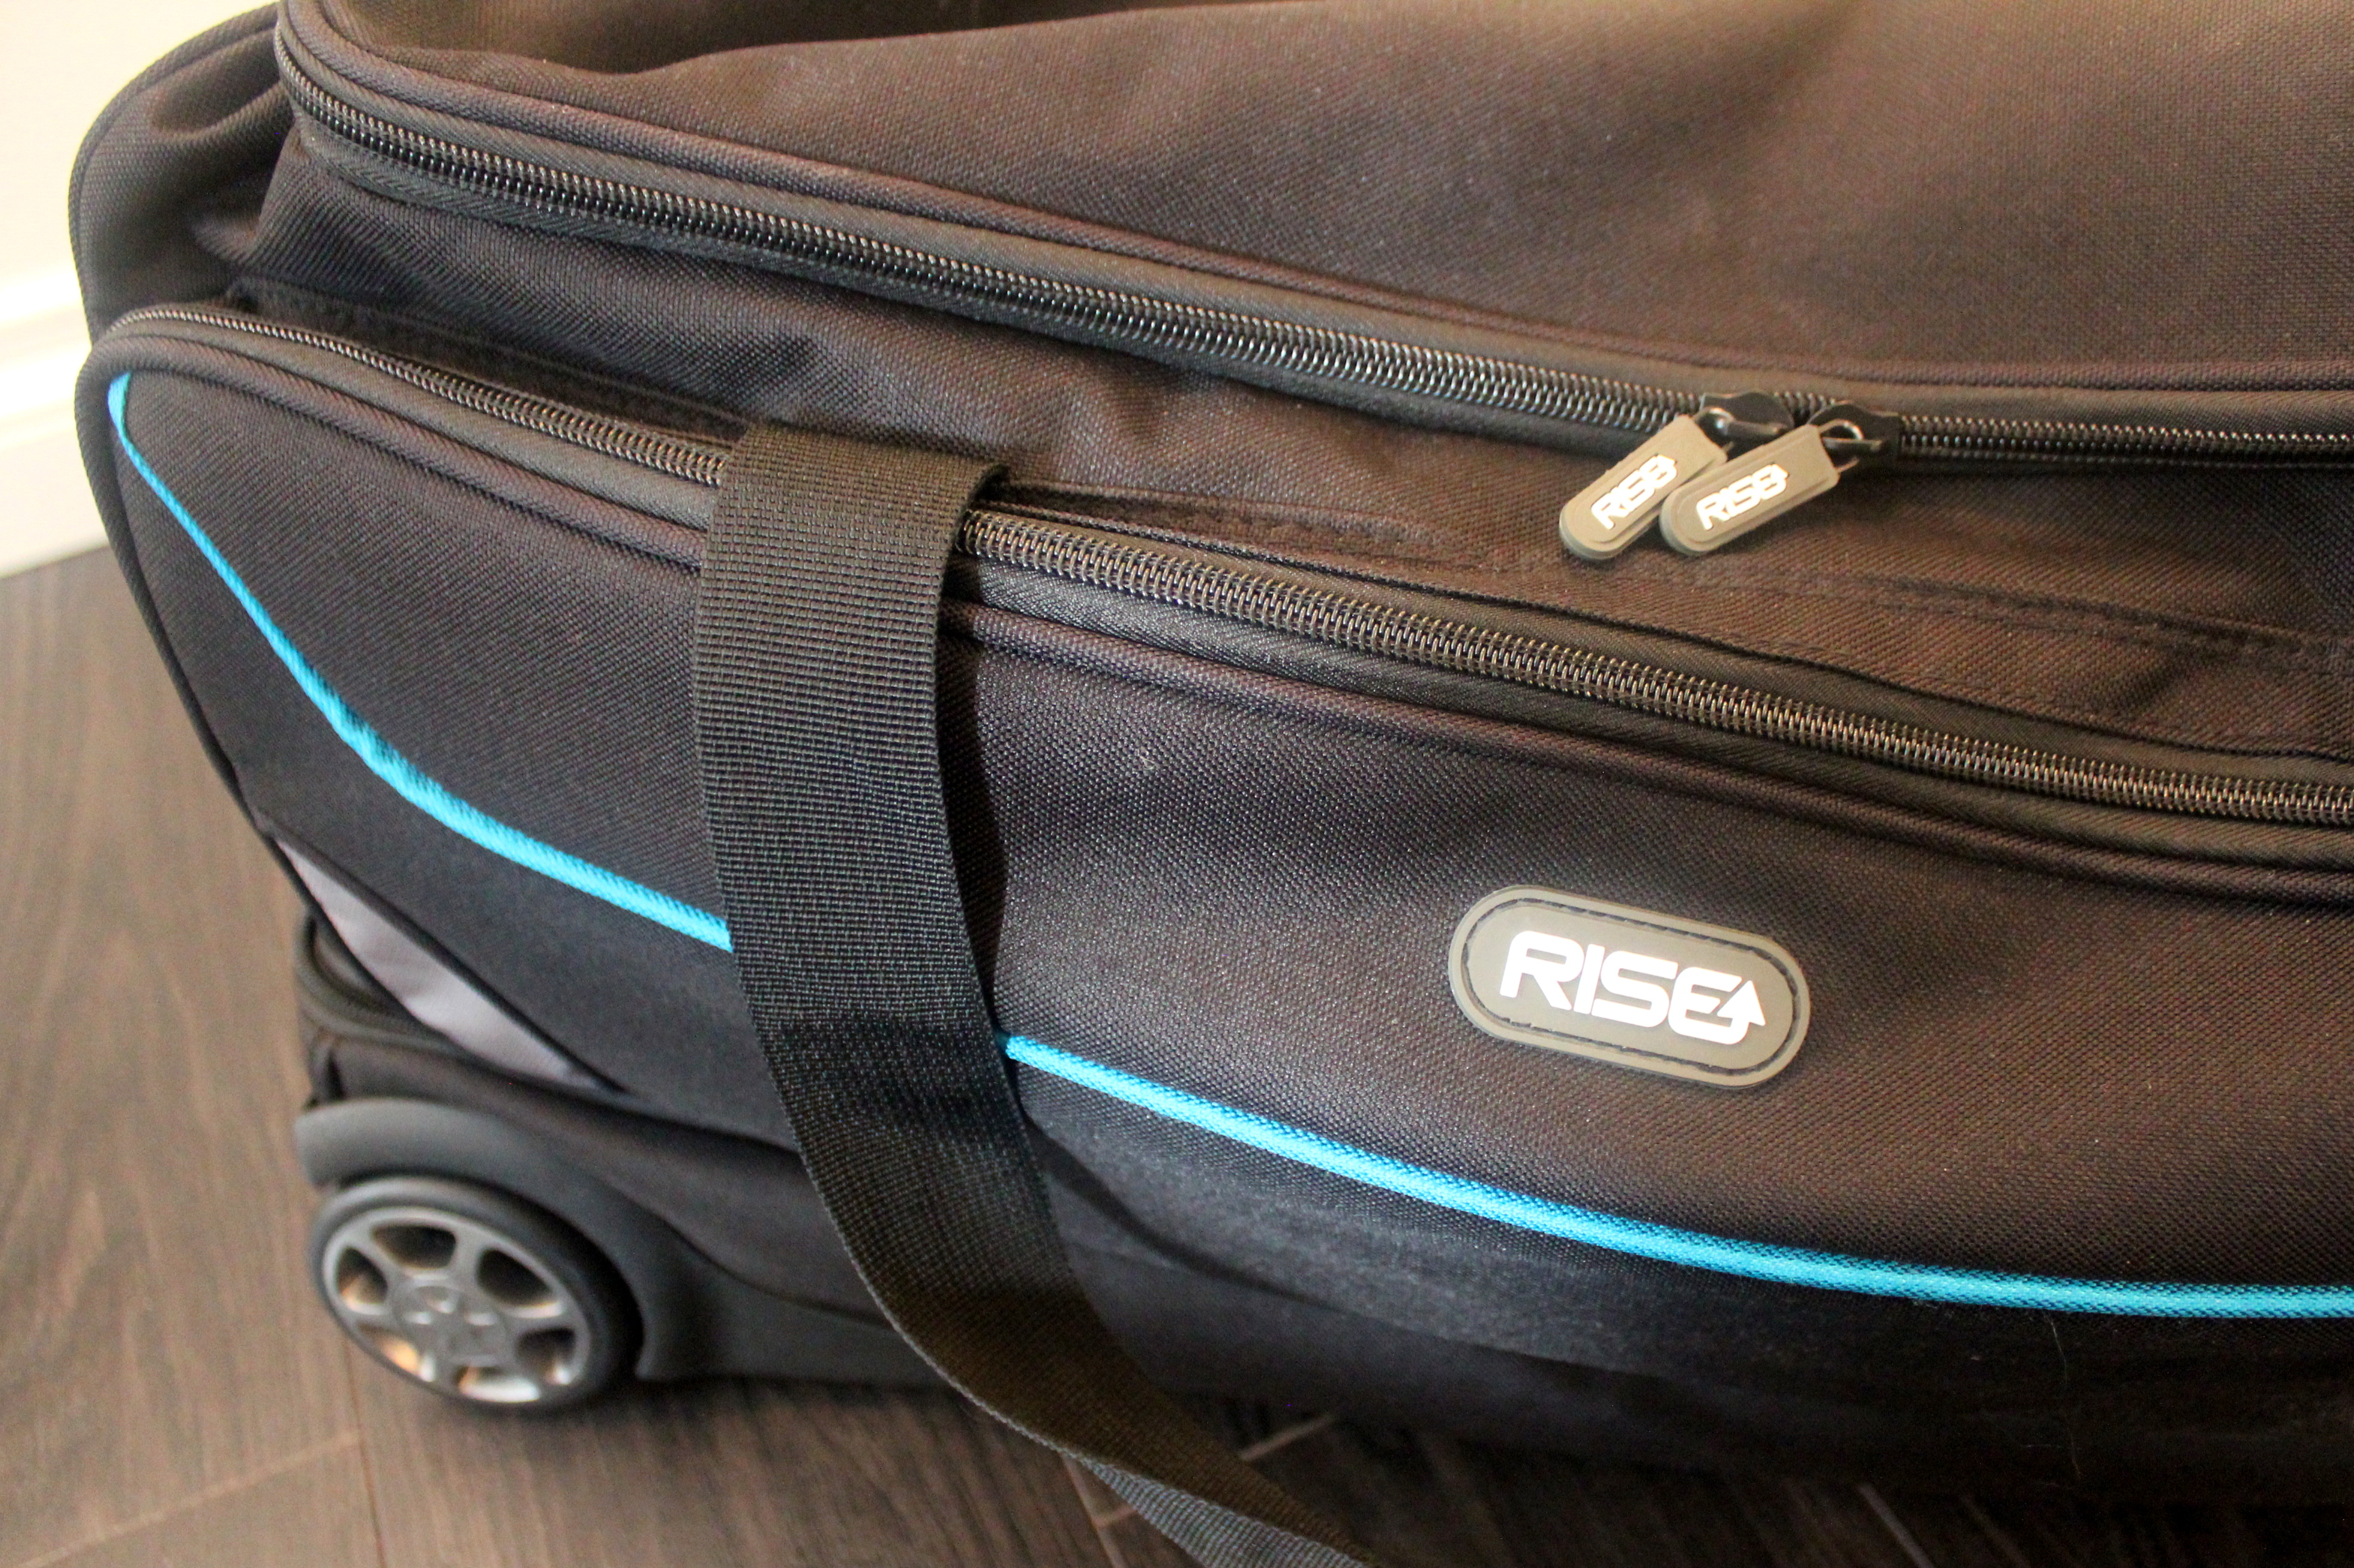 Rise Gear: The evolution of travel bags